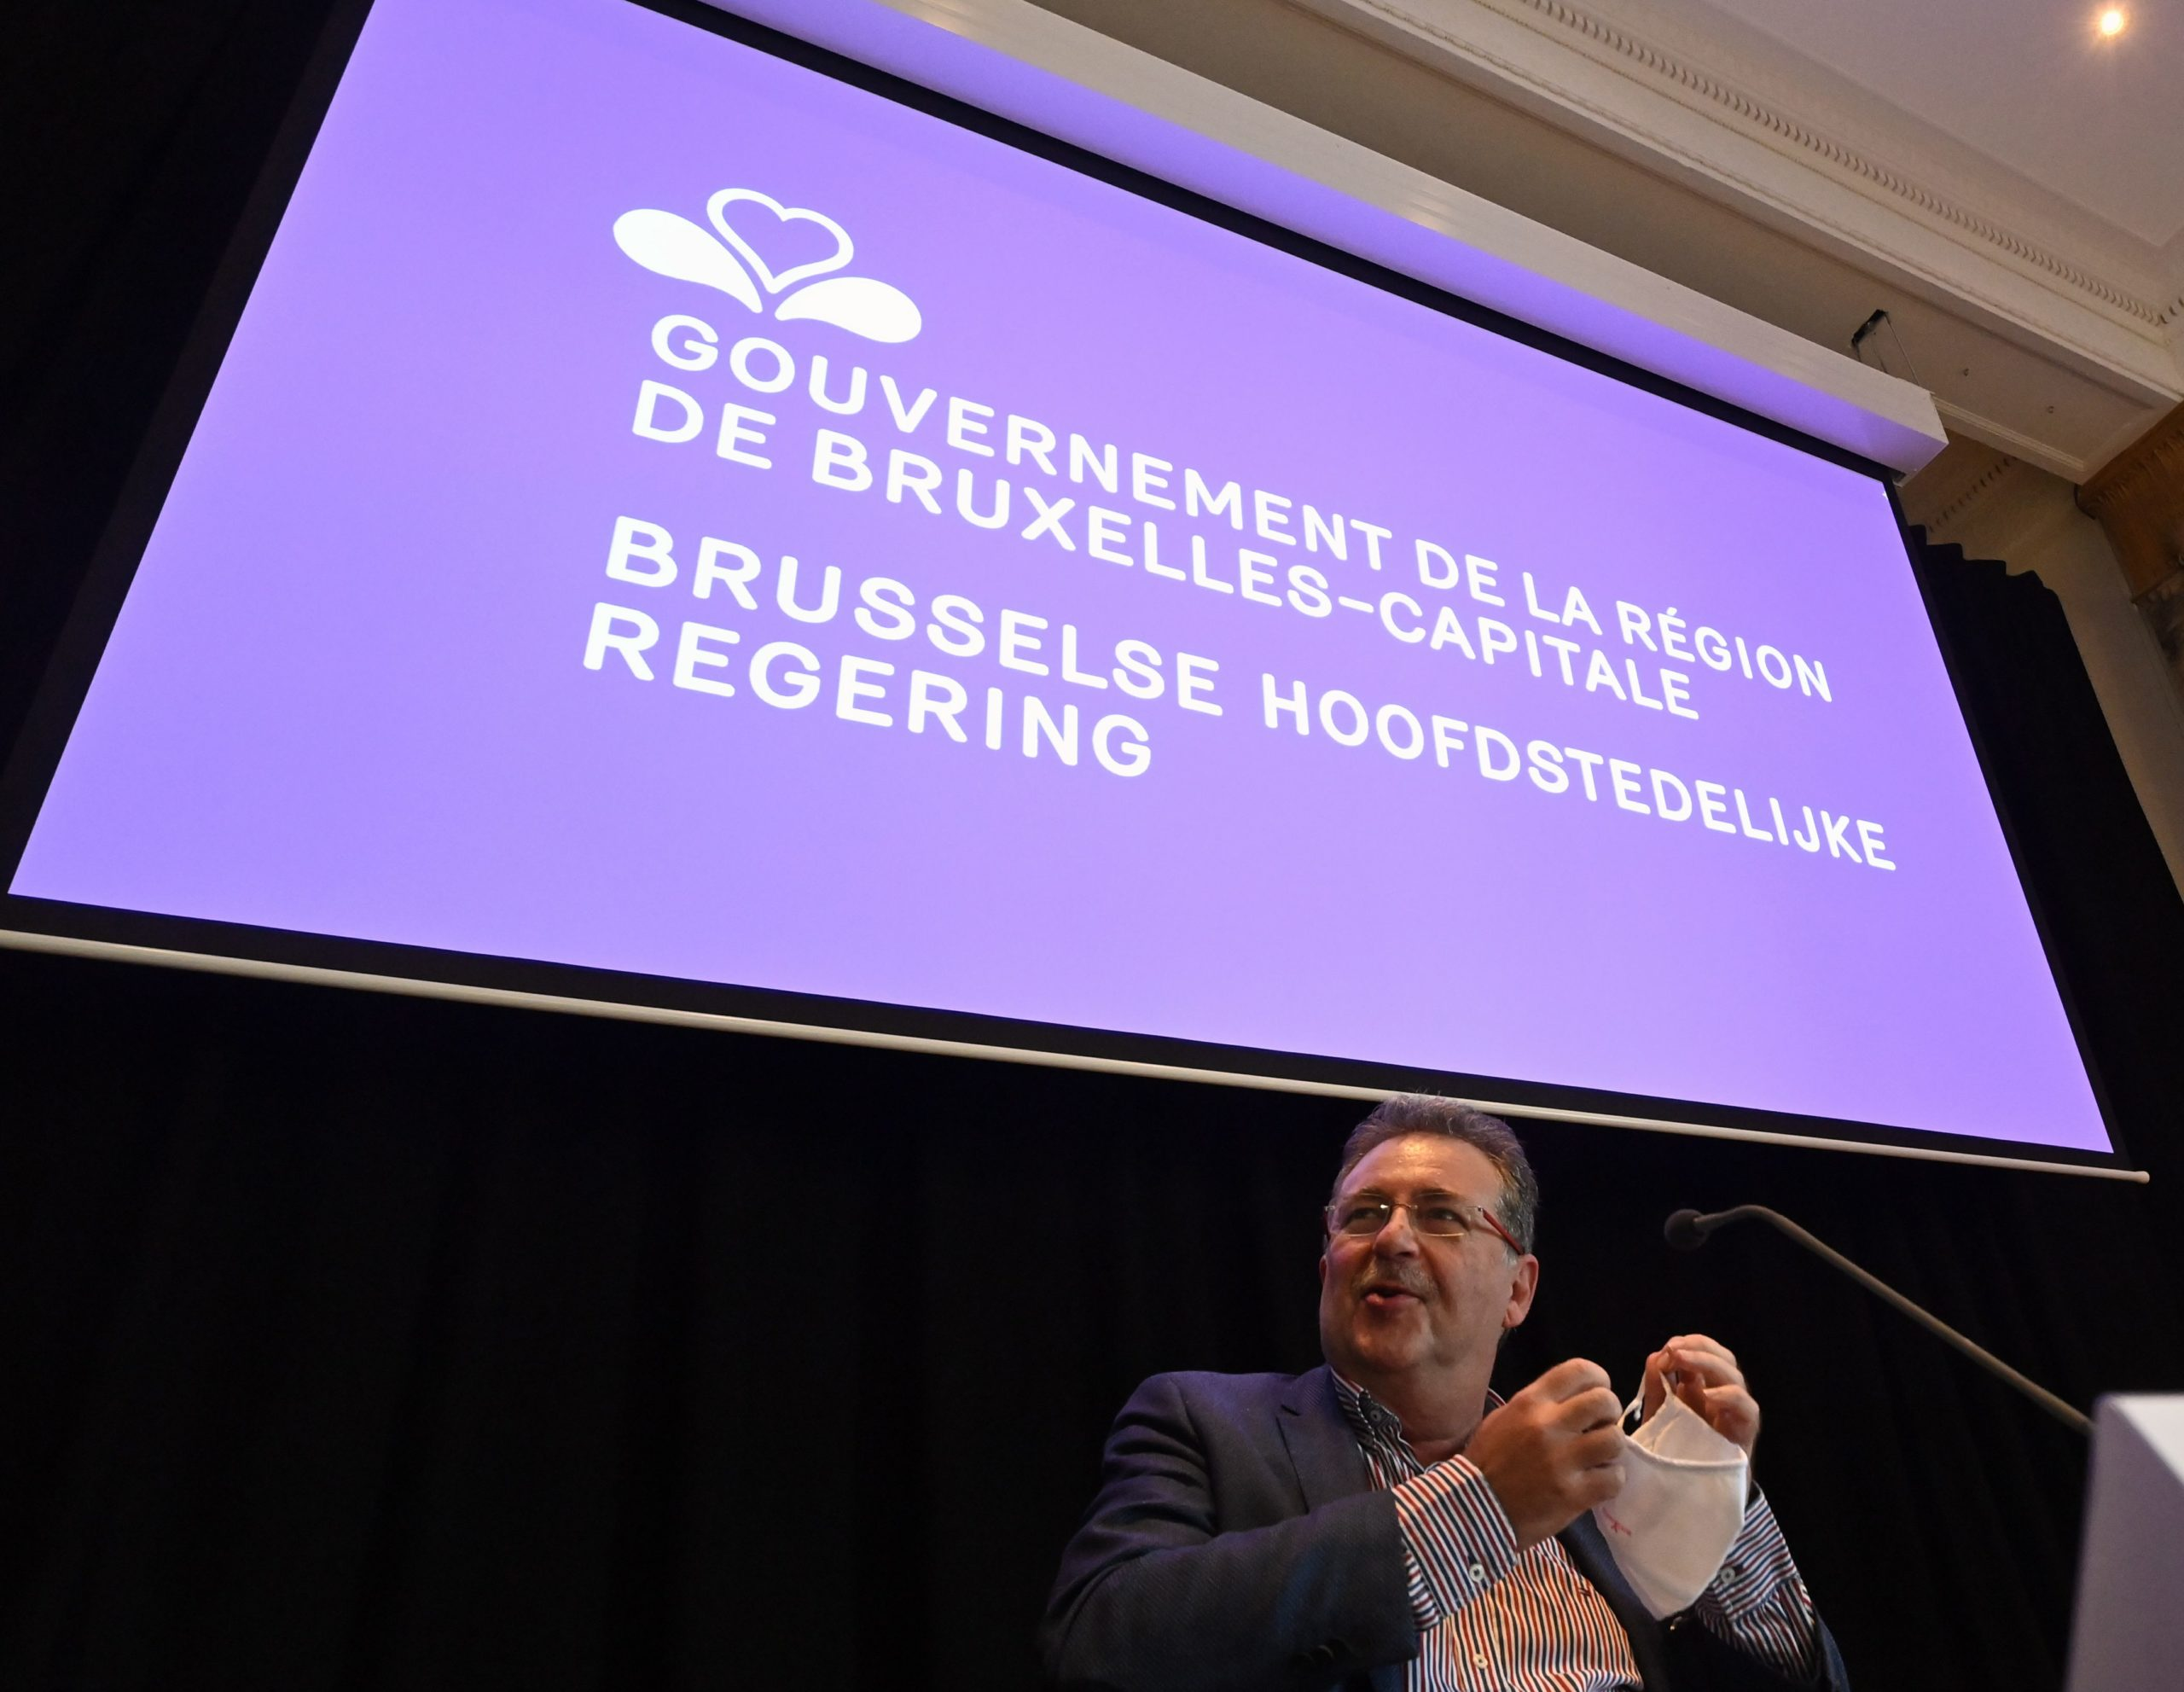 Photo of Wider debate needed before 5G rollout, says Brussels government chief